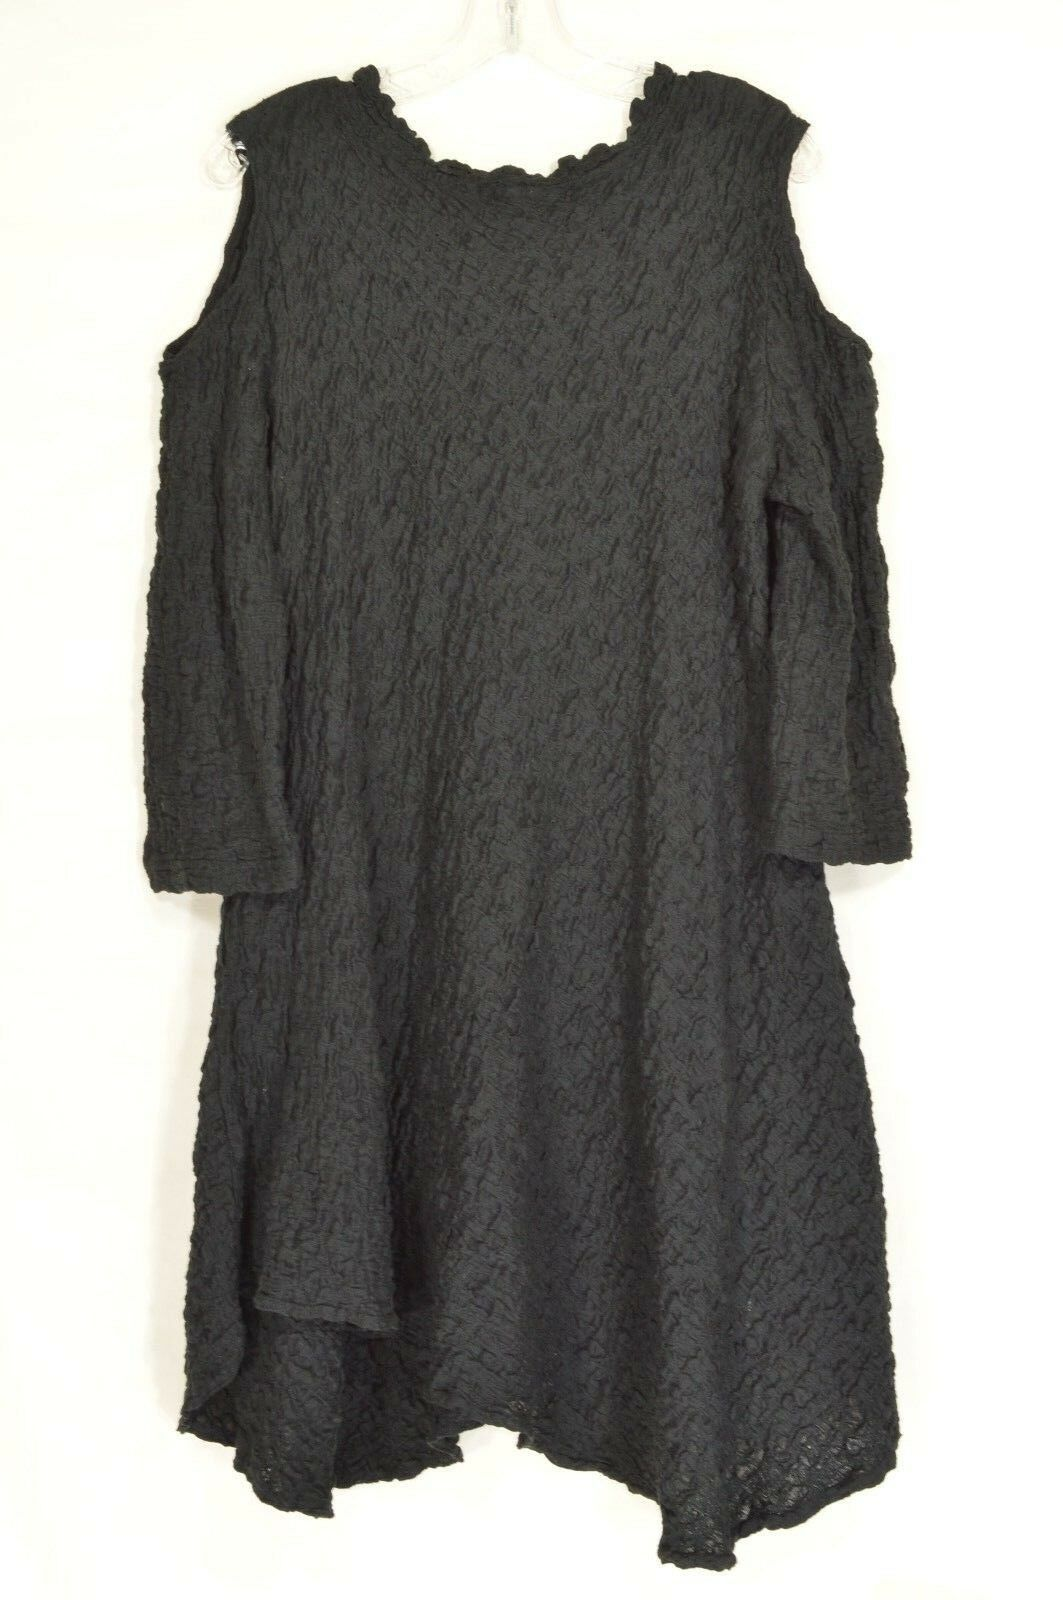 Design Today dress tunic S black long sleeve cold shoulder crinkle material